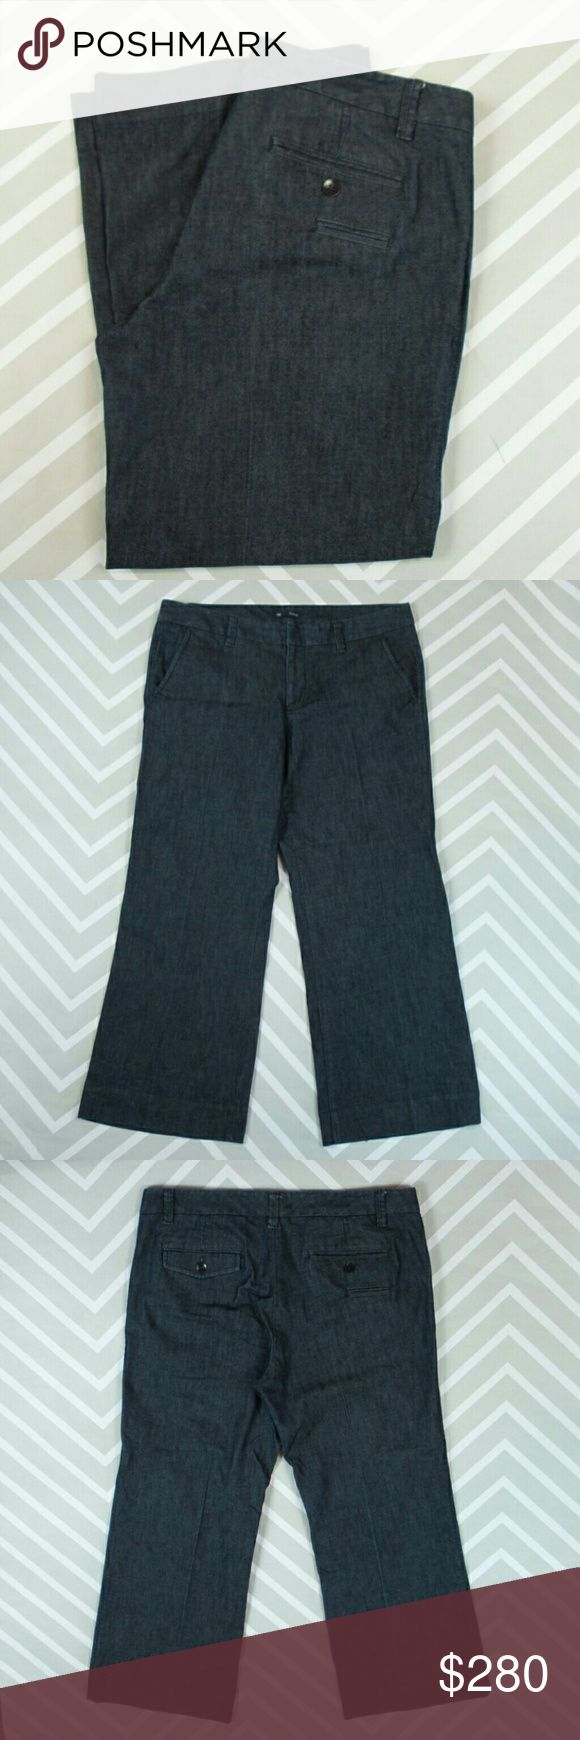 ✂ Gap trouser jeans 14R Dark denim trousers with extra back coin pocket. Excellent condition.  Approx. Measurements in inches Waist 38 Low Hip 44.5 Front rise 10.5 Back rise 16.75 Inseam 29  No trades. GAP Pants Trousers